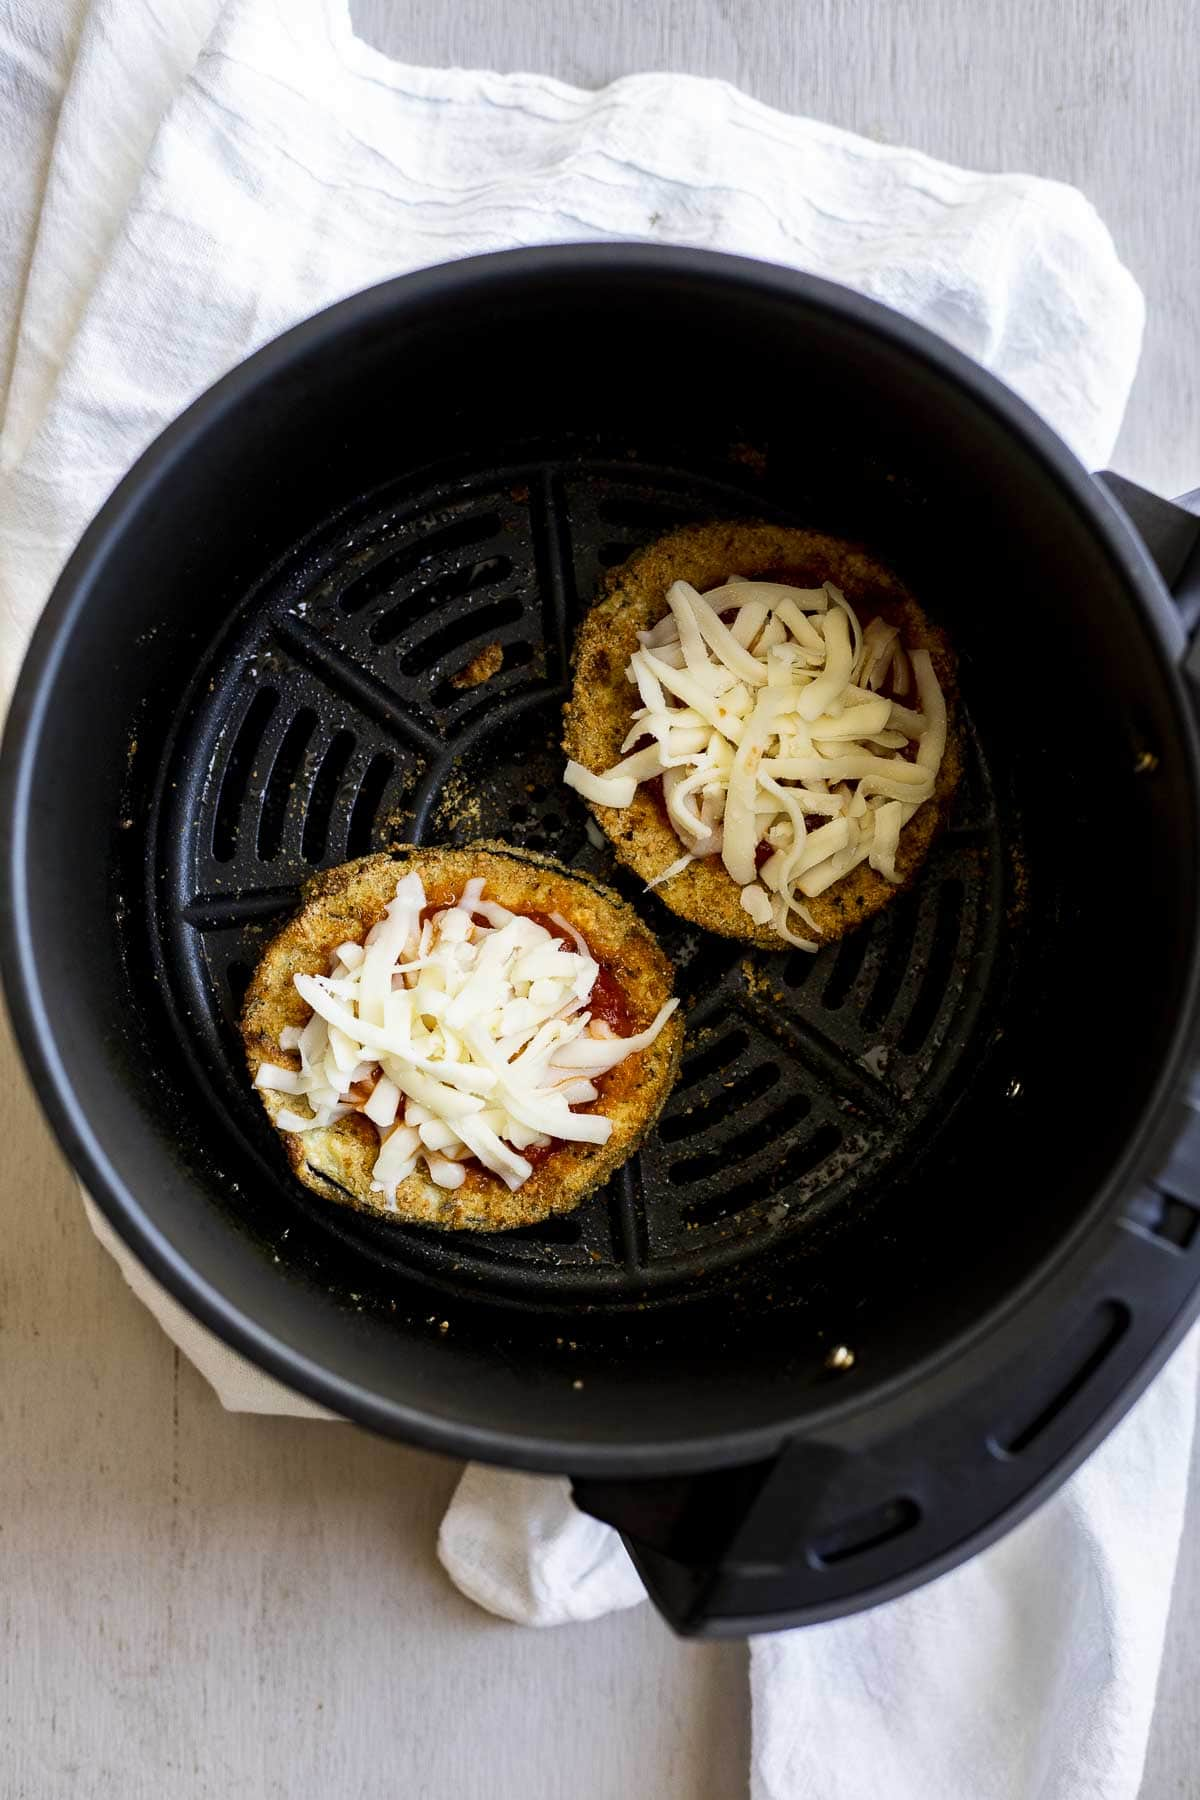 Two slices of eggplant in an air fryer basket and topped with marinara and cheese.